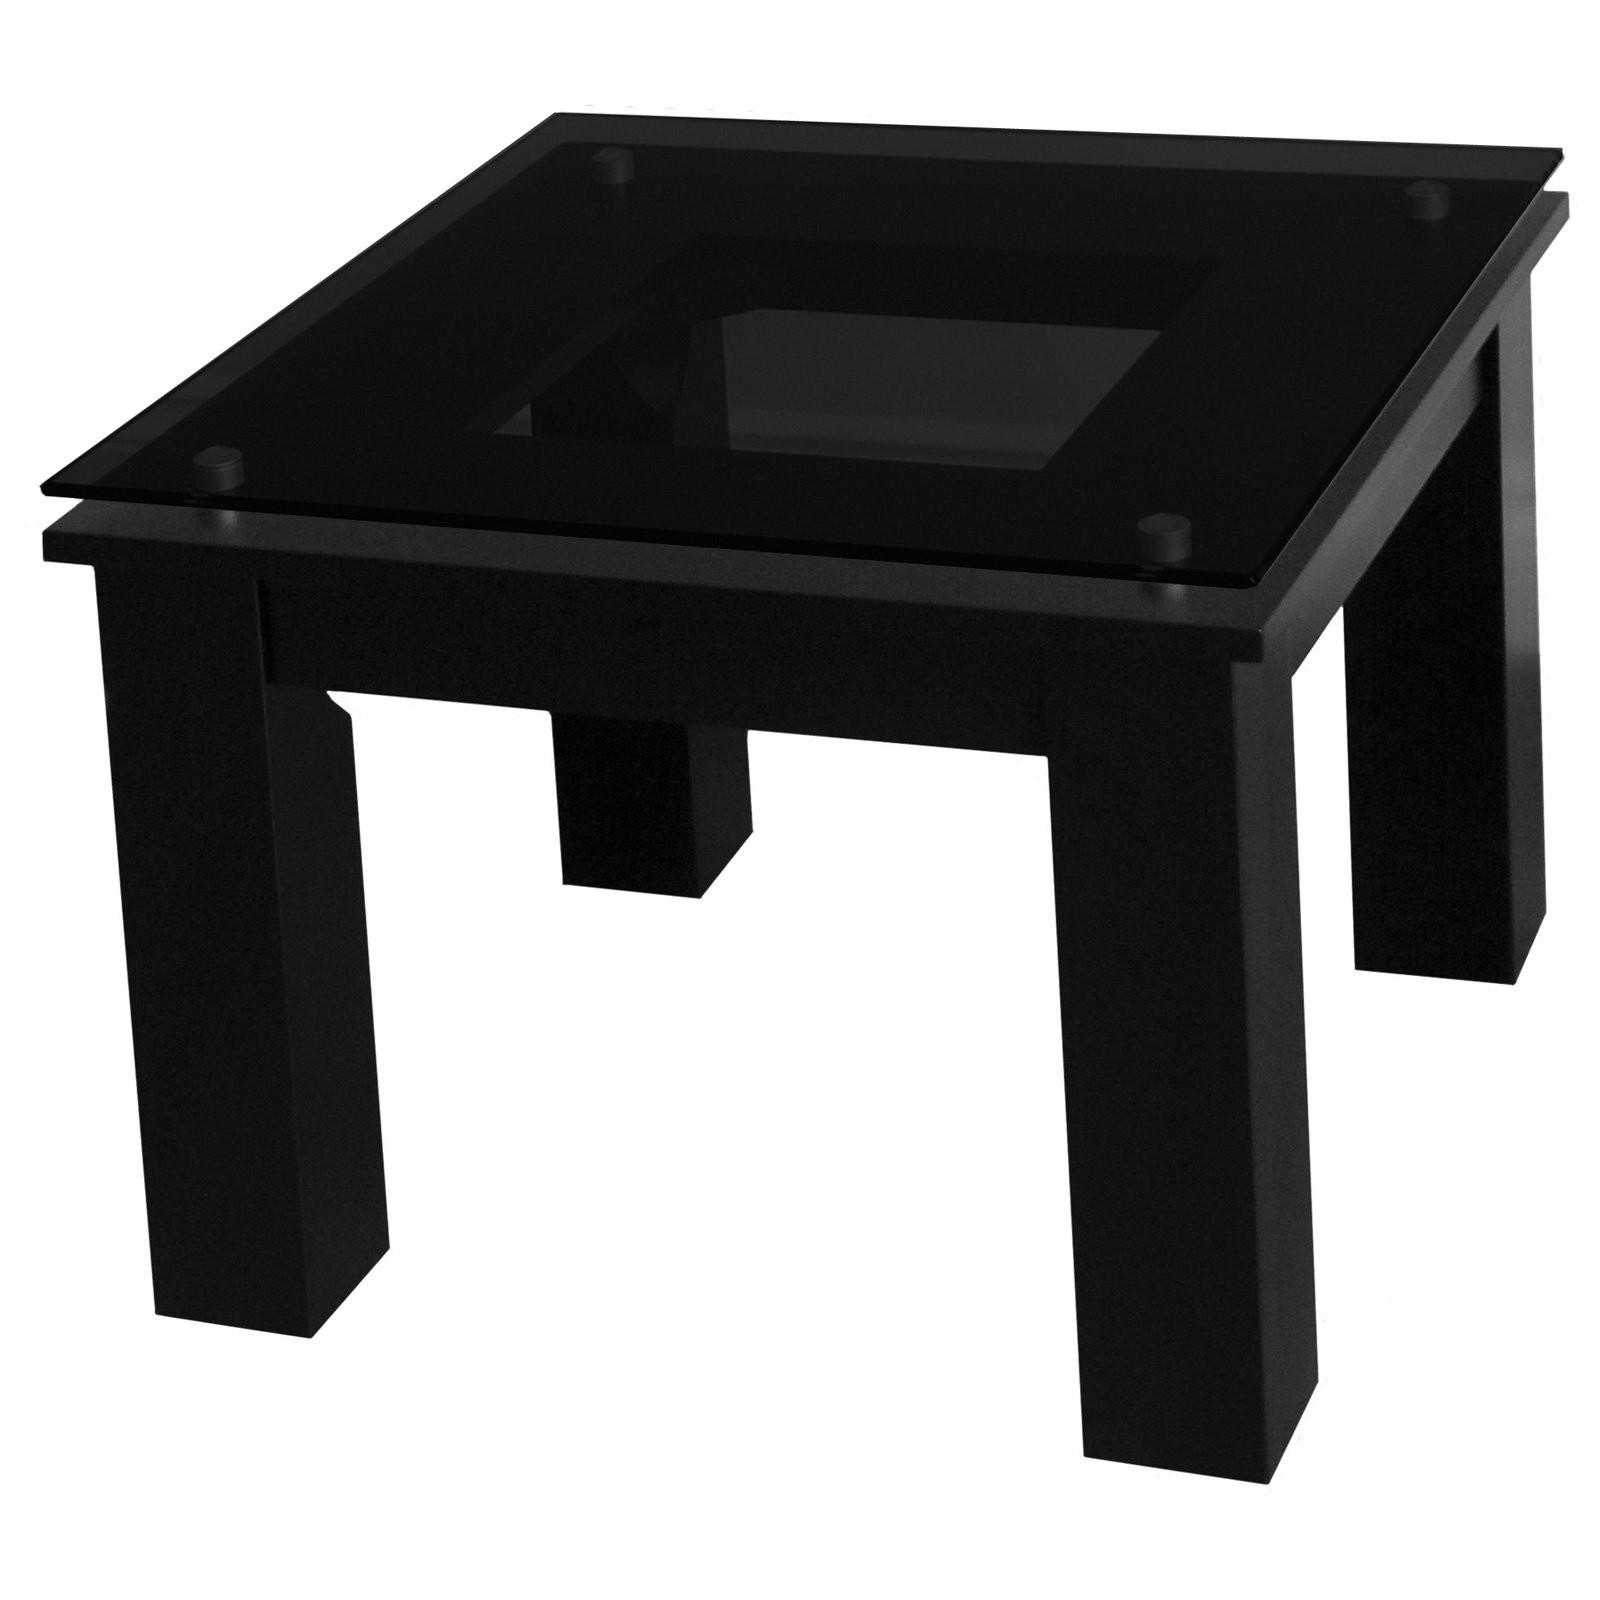 Plateau Contemporary End Table Black